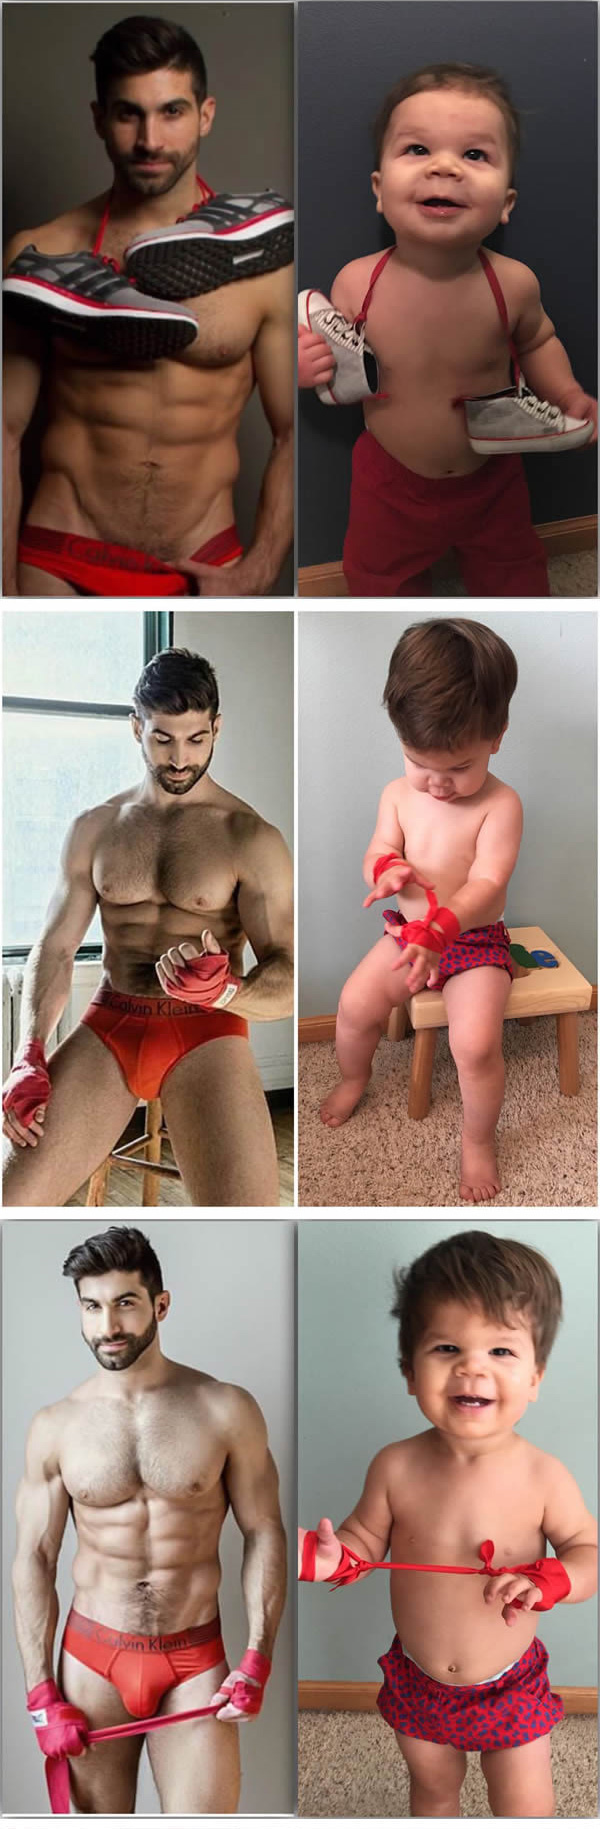 uncle baby model recreates poses